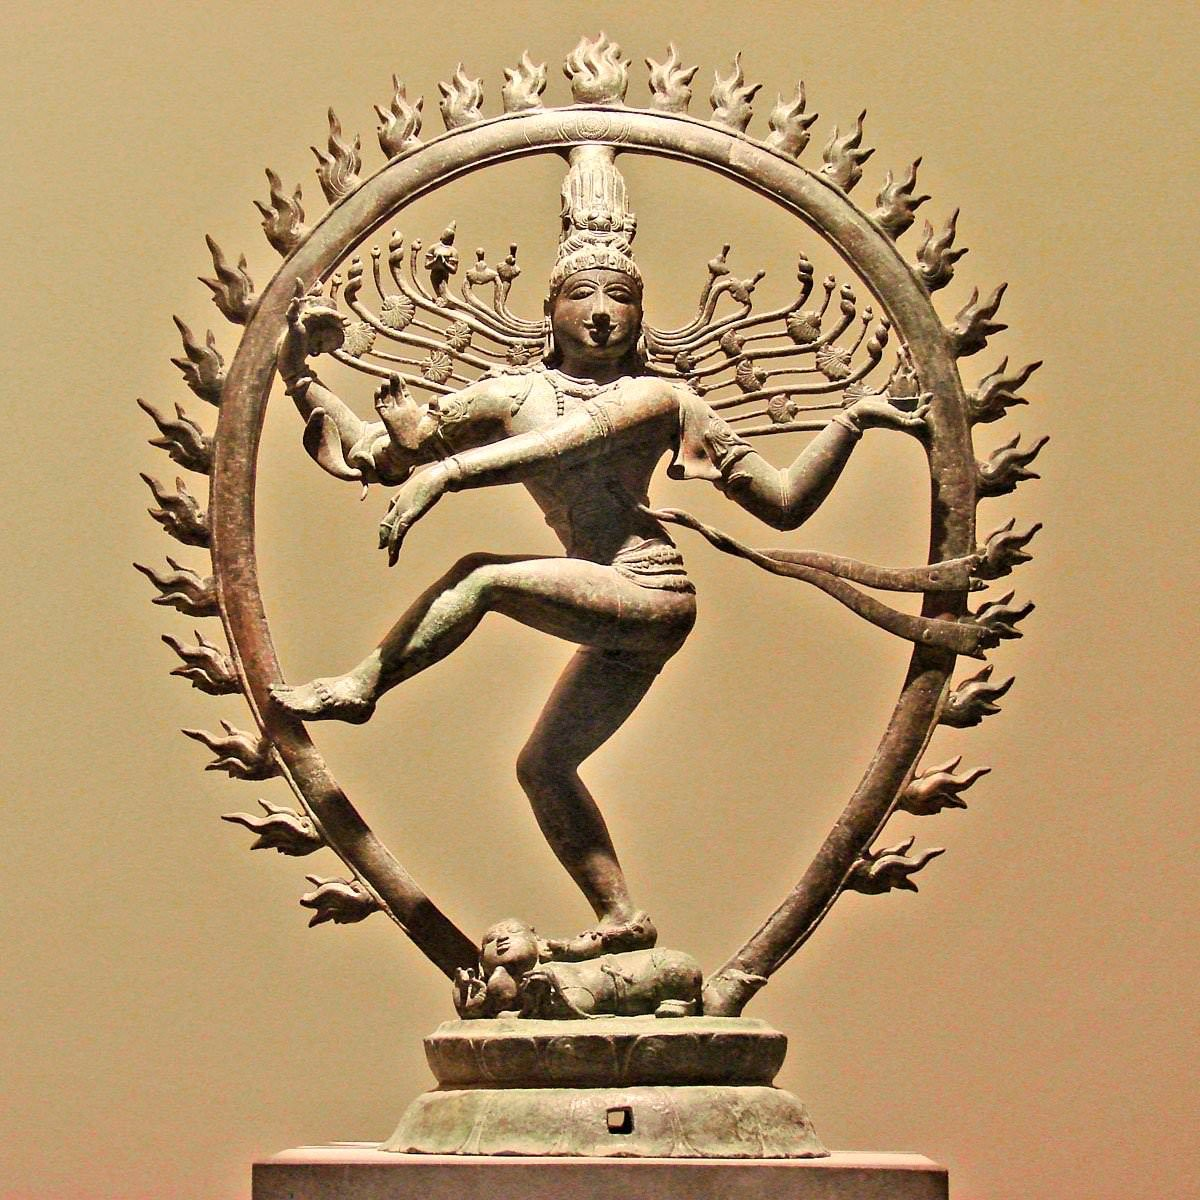 How the modern Scientist perceive the Dance of Siva: Dance of Siva and Sivalingam in Hindu philosophy as Dynamic and Statistic model for universe respectively